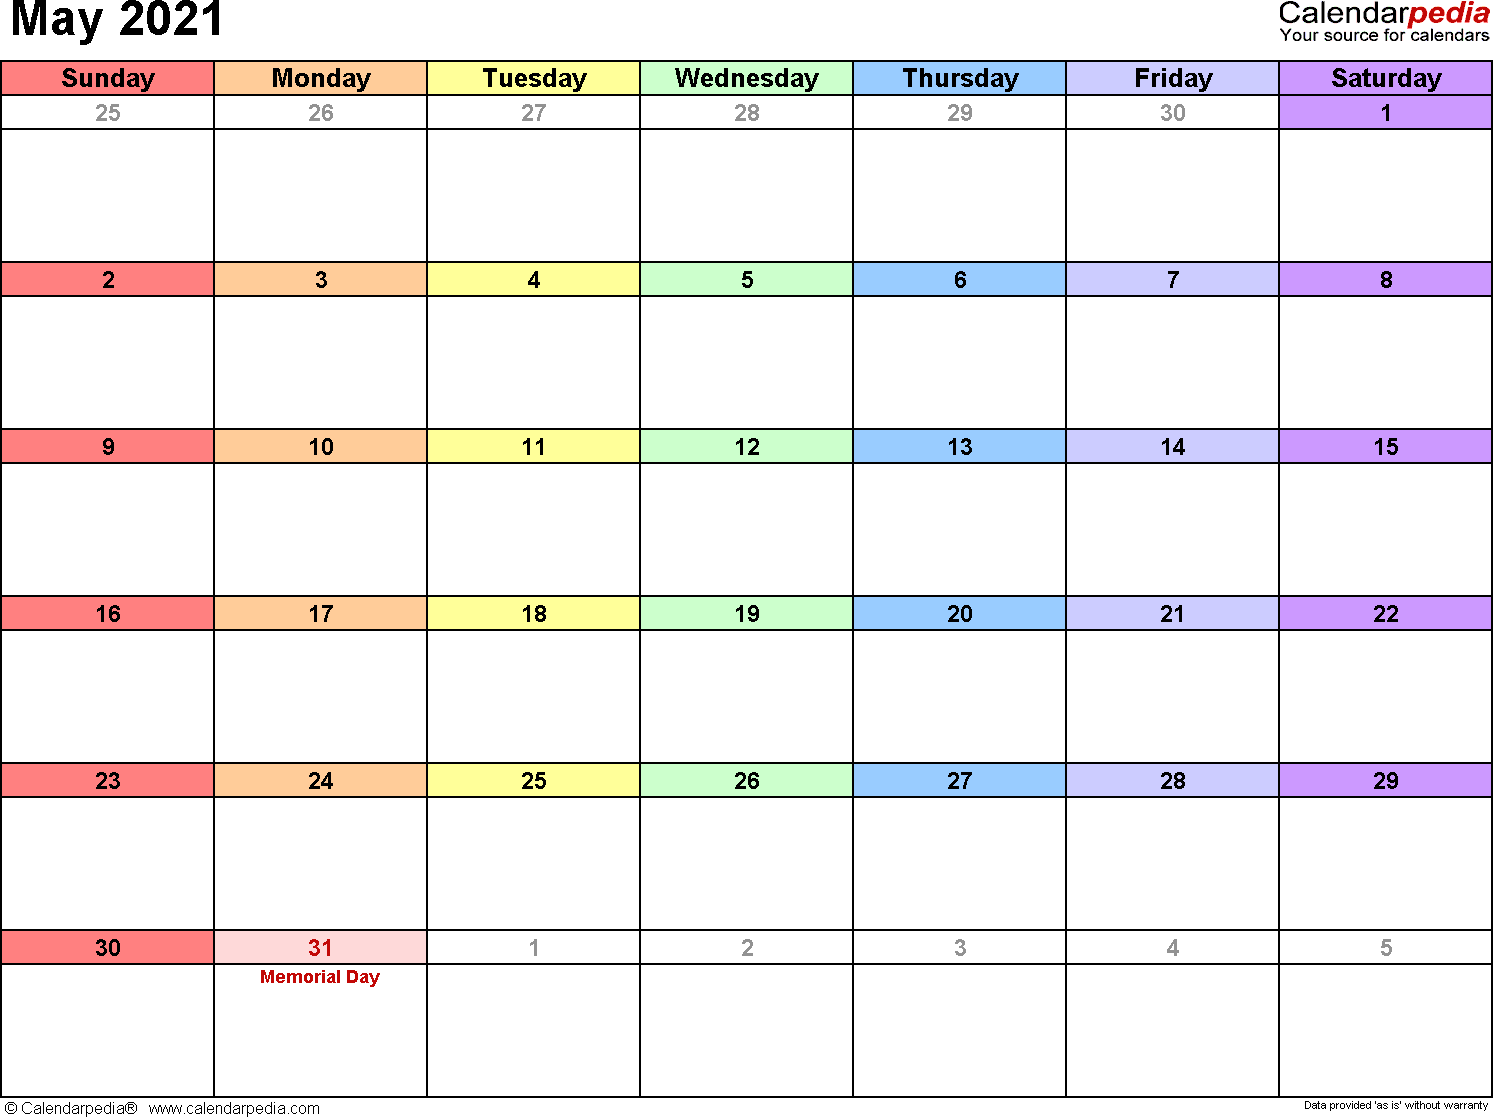 May 2021 calendar printable template